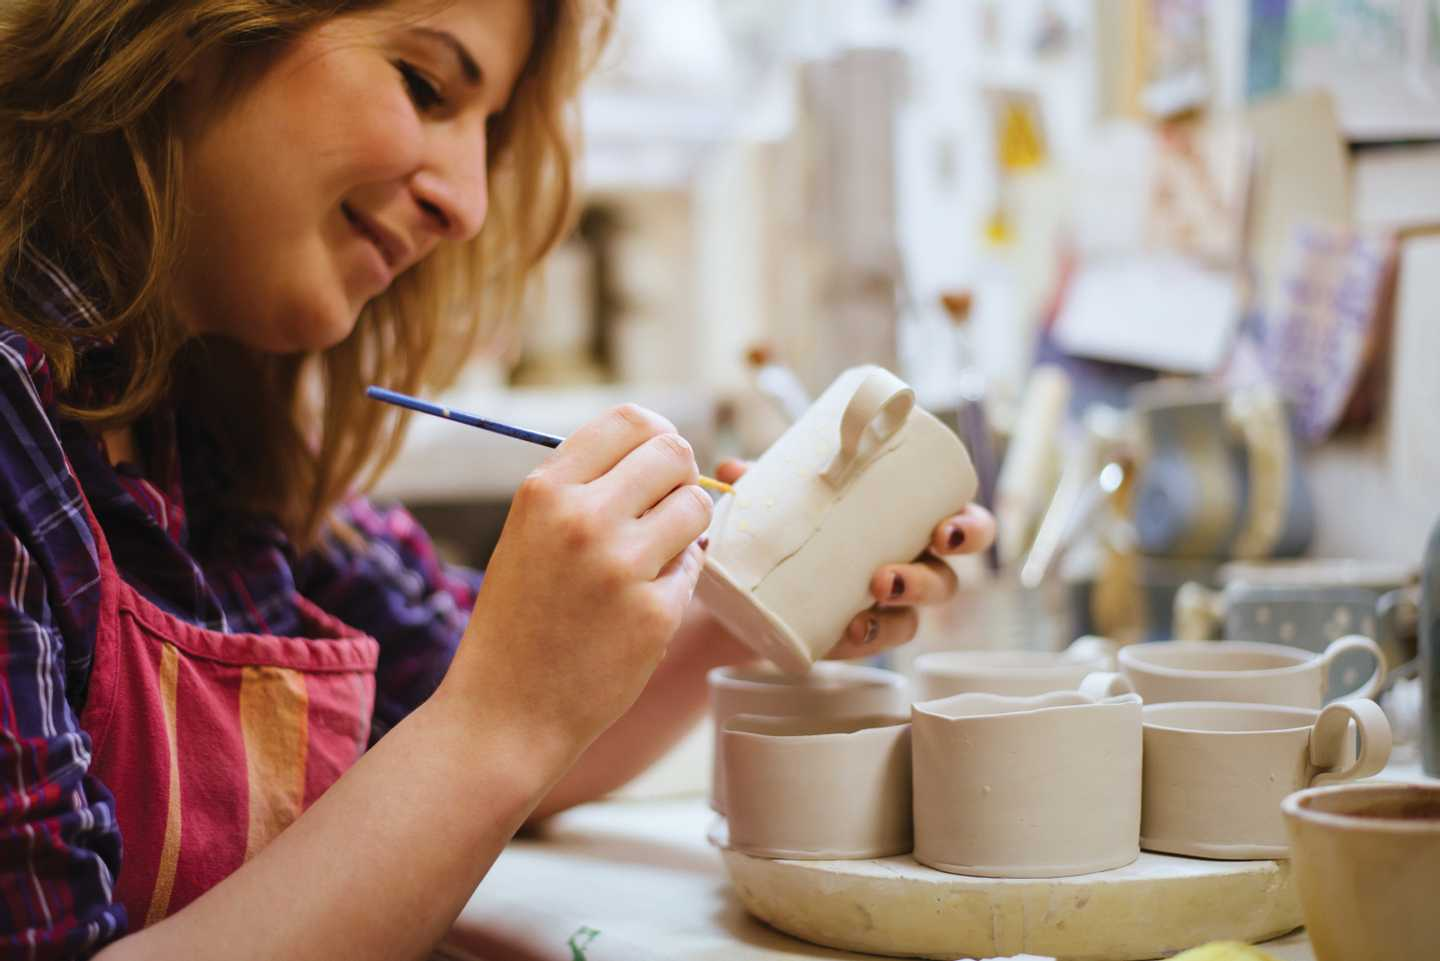 Lady lovingly painting her pottery creation